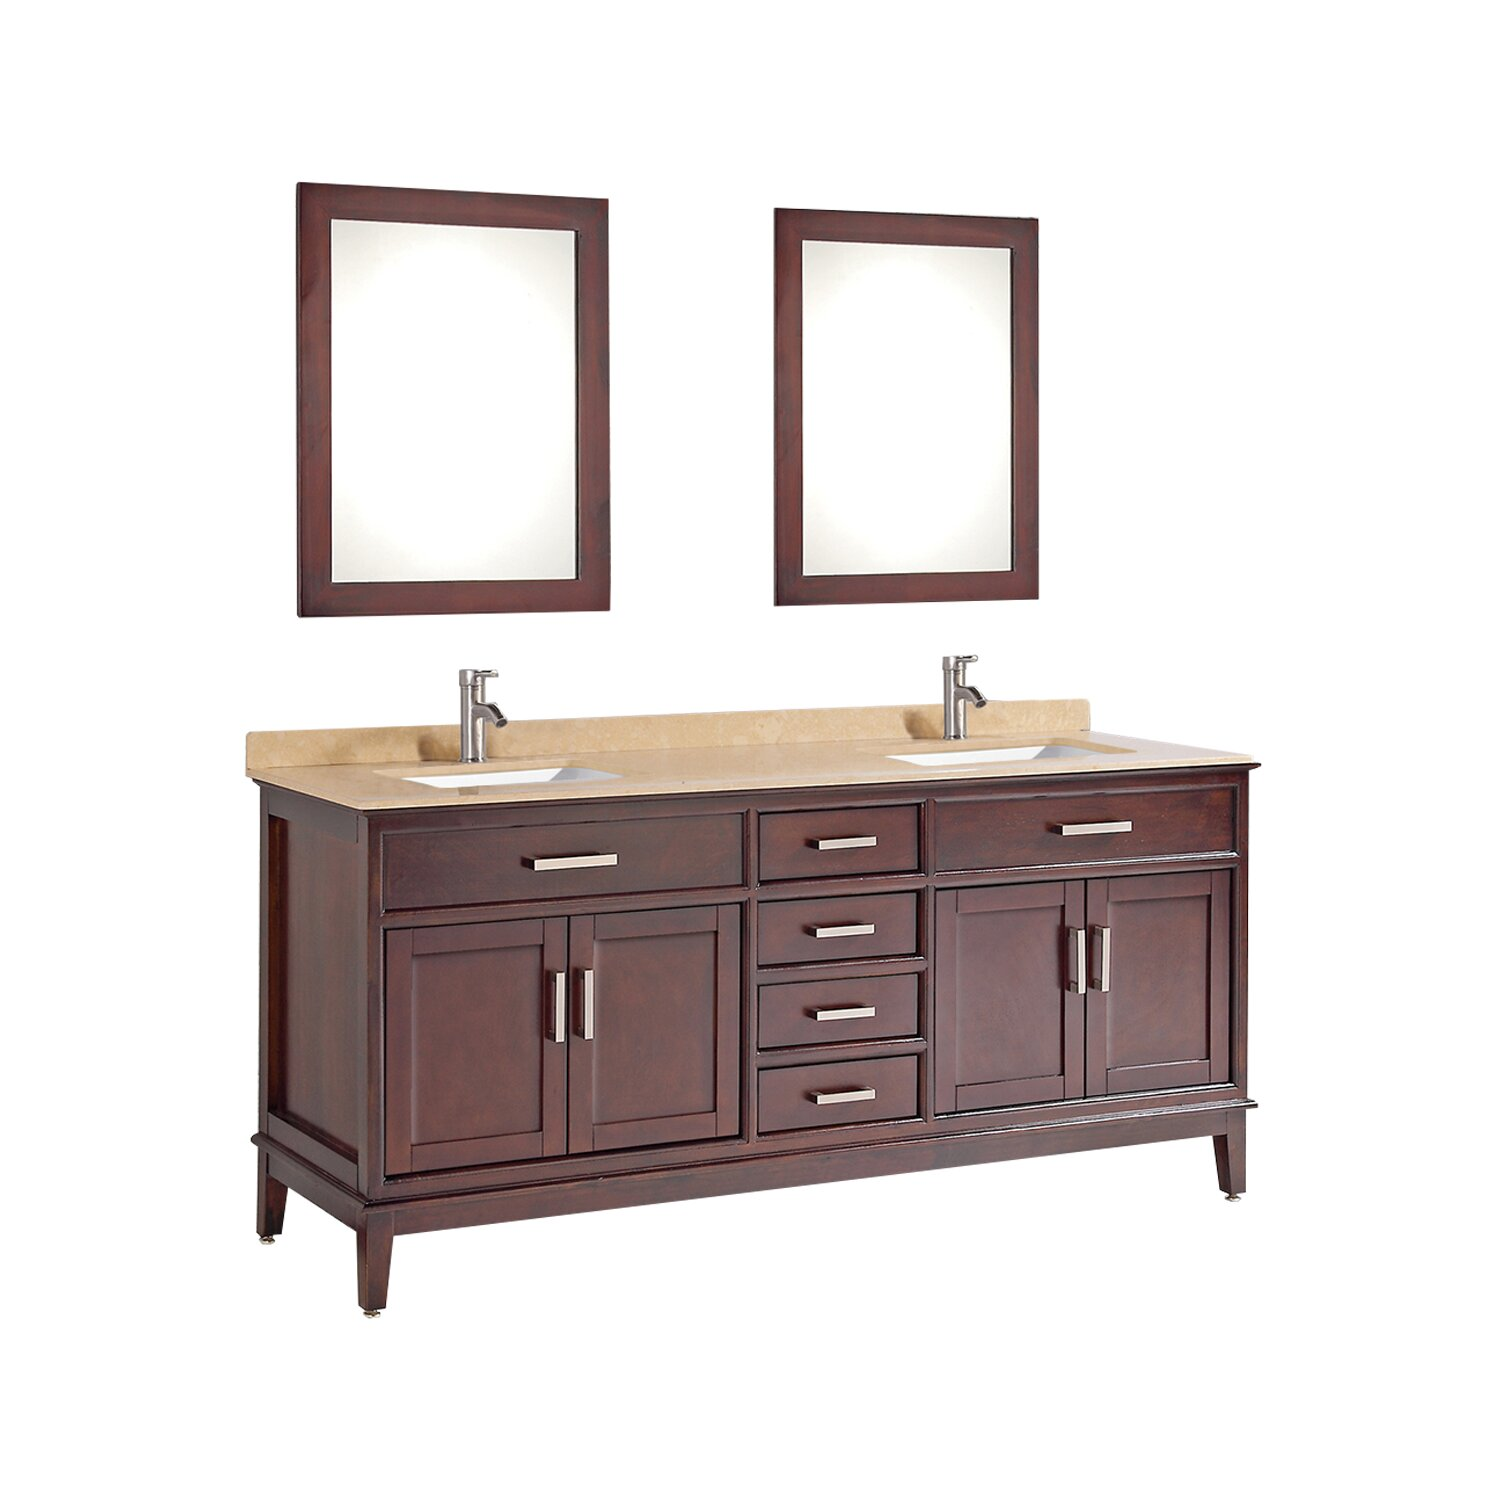 25 perfect bathroom vanities and mirrors sets Bathroom sink and vanity sets